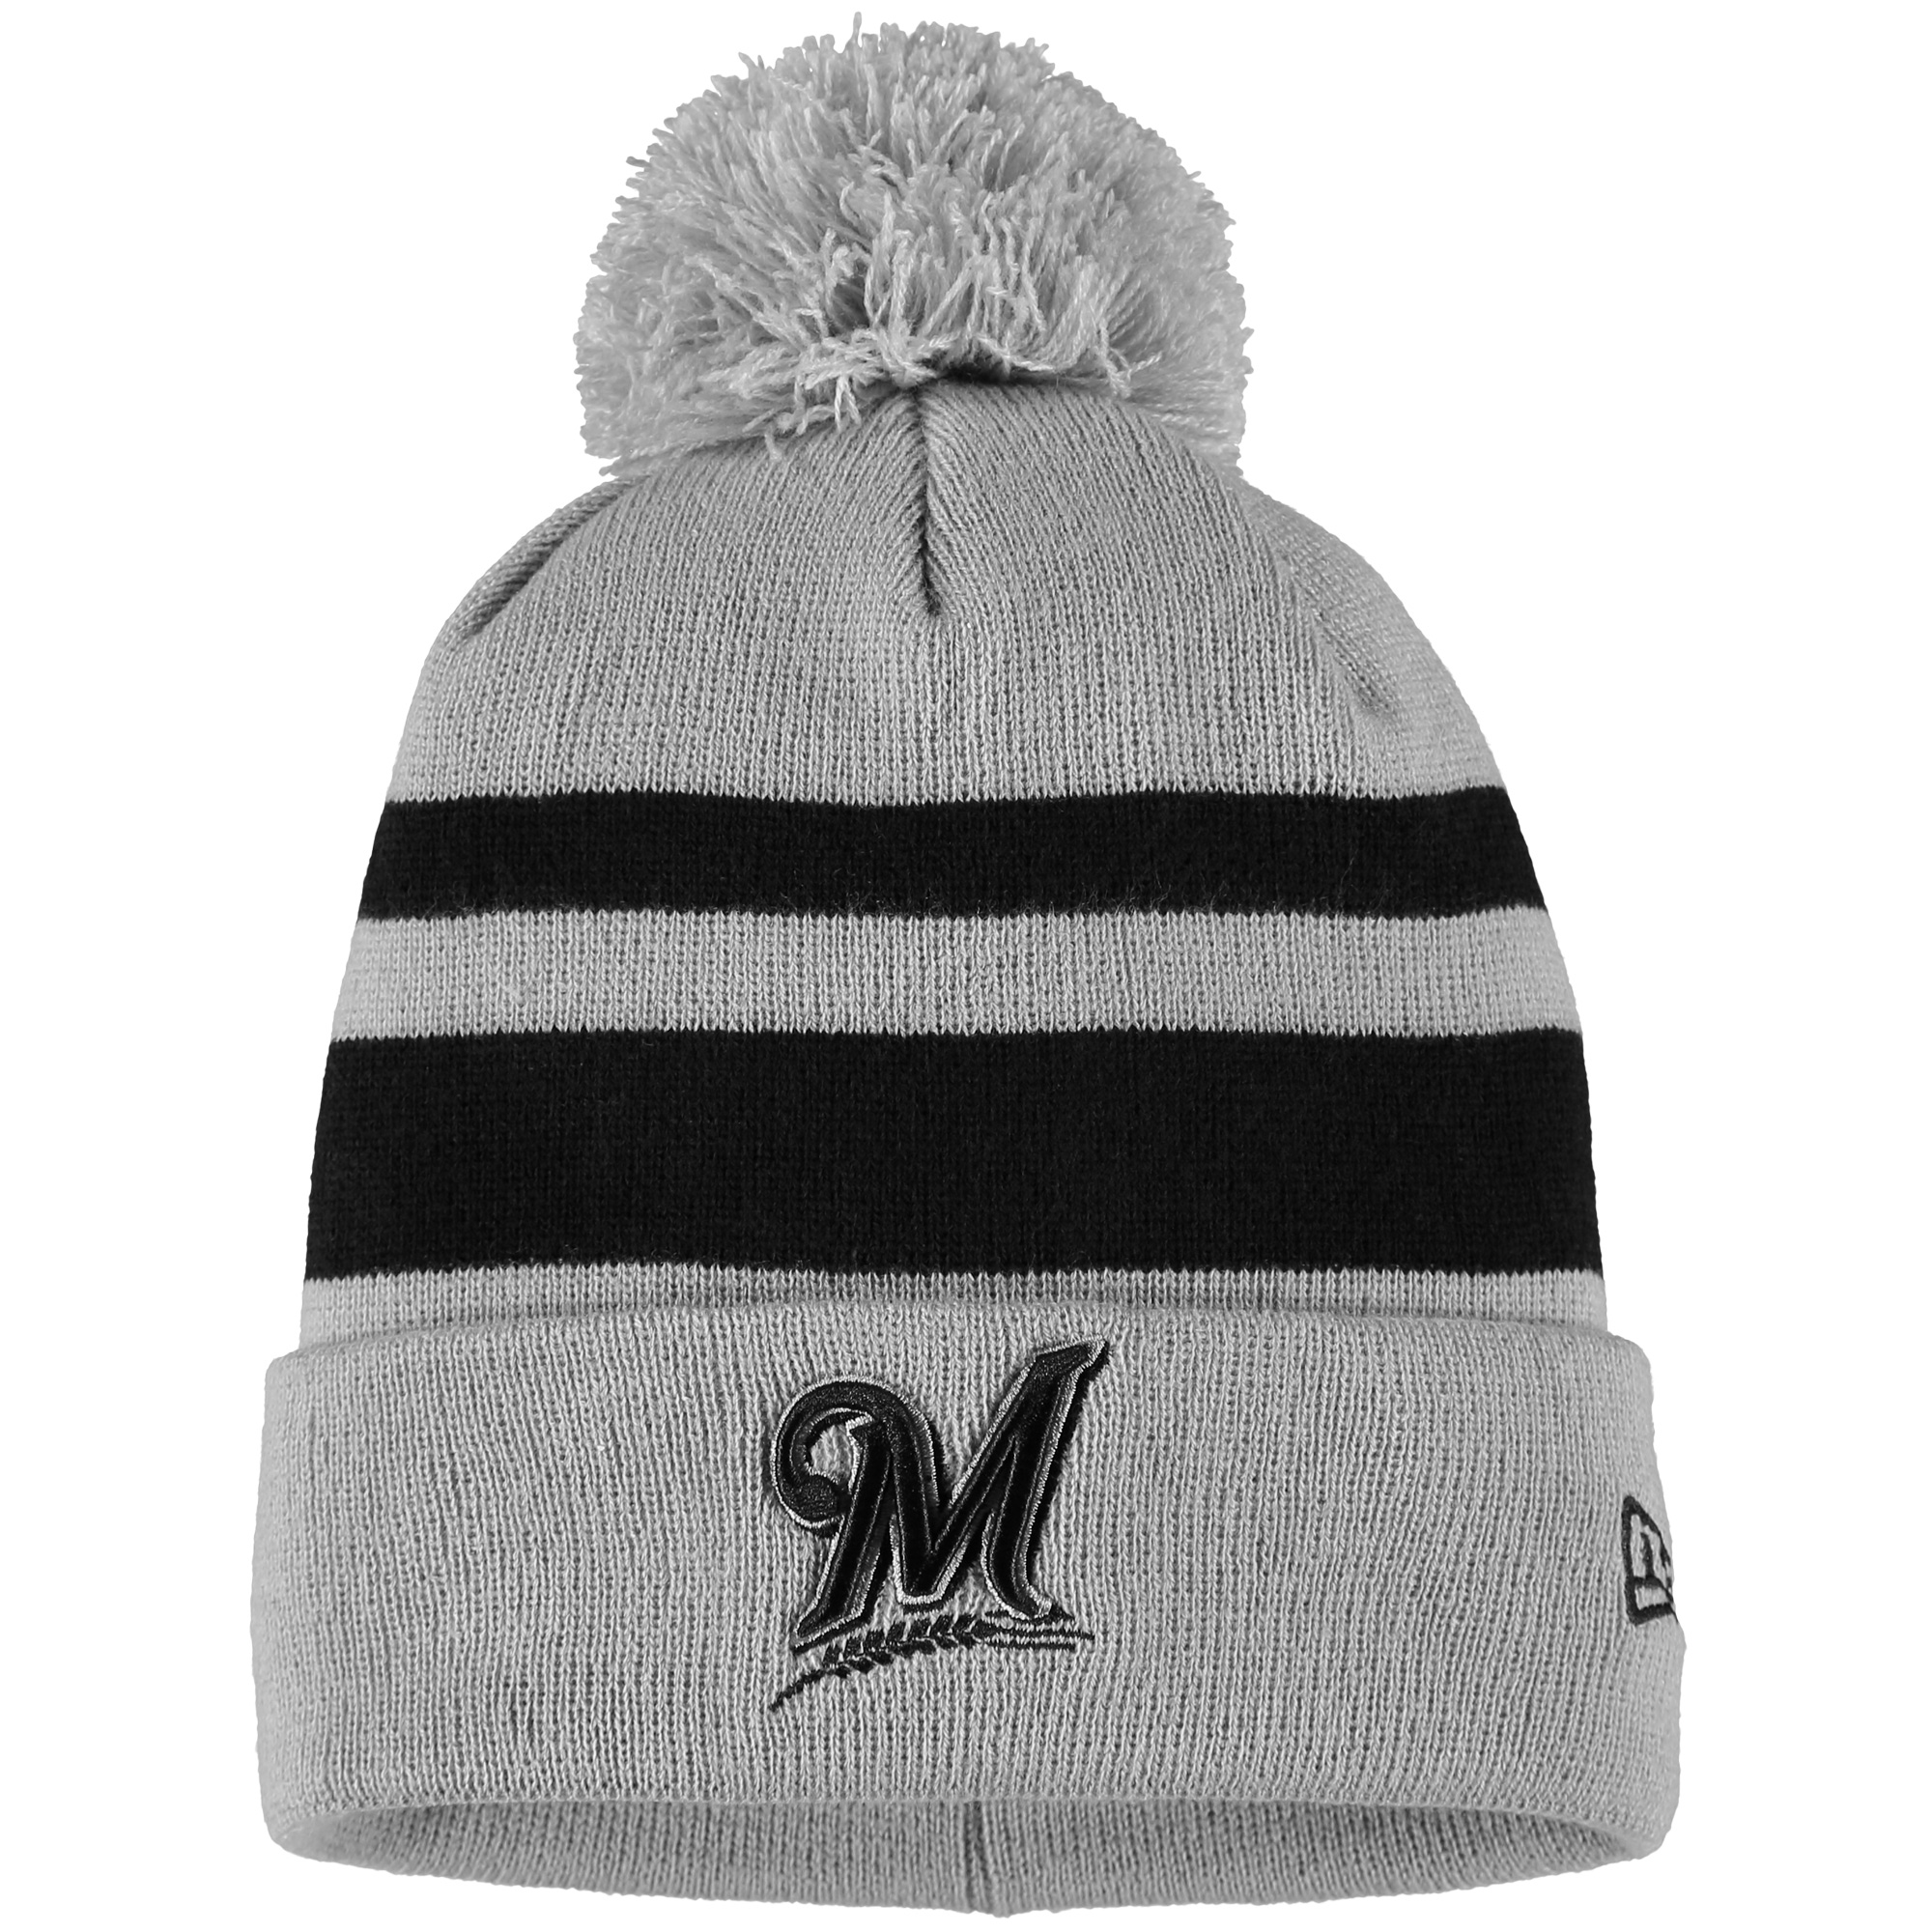 Milwaukee Brewers New Era Rebound Cuffed Knit Hat with Pom - Gray/Black - OSFA